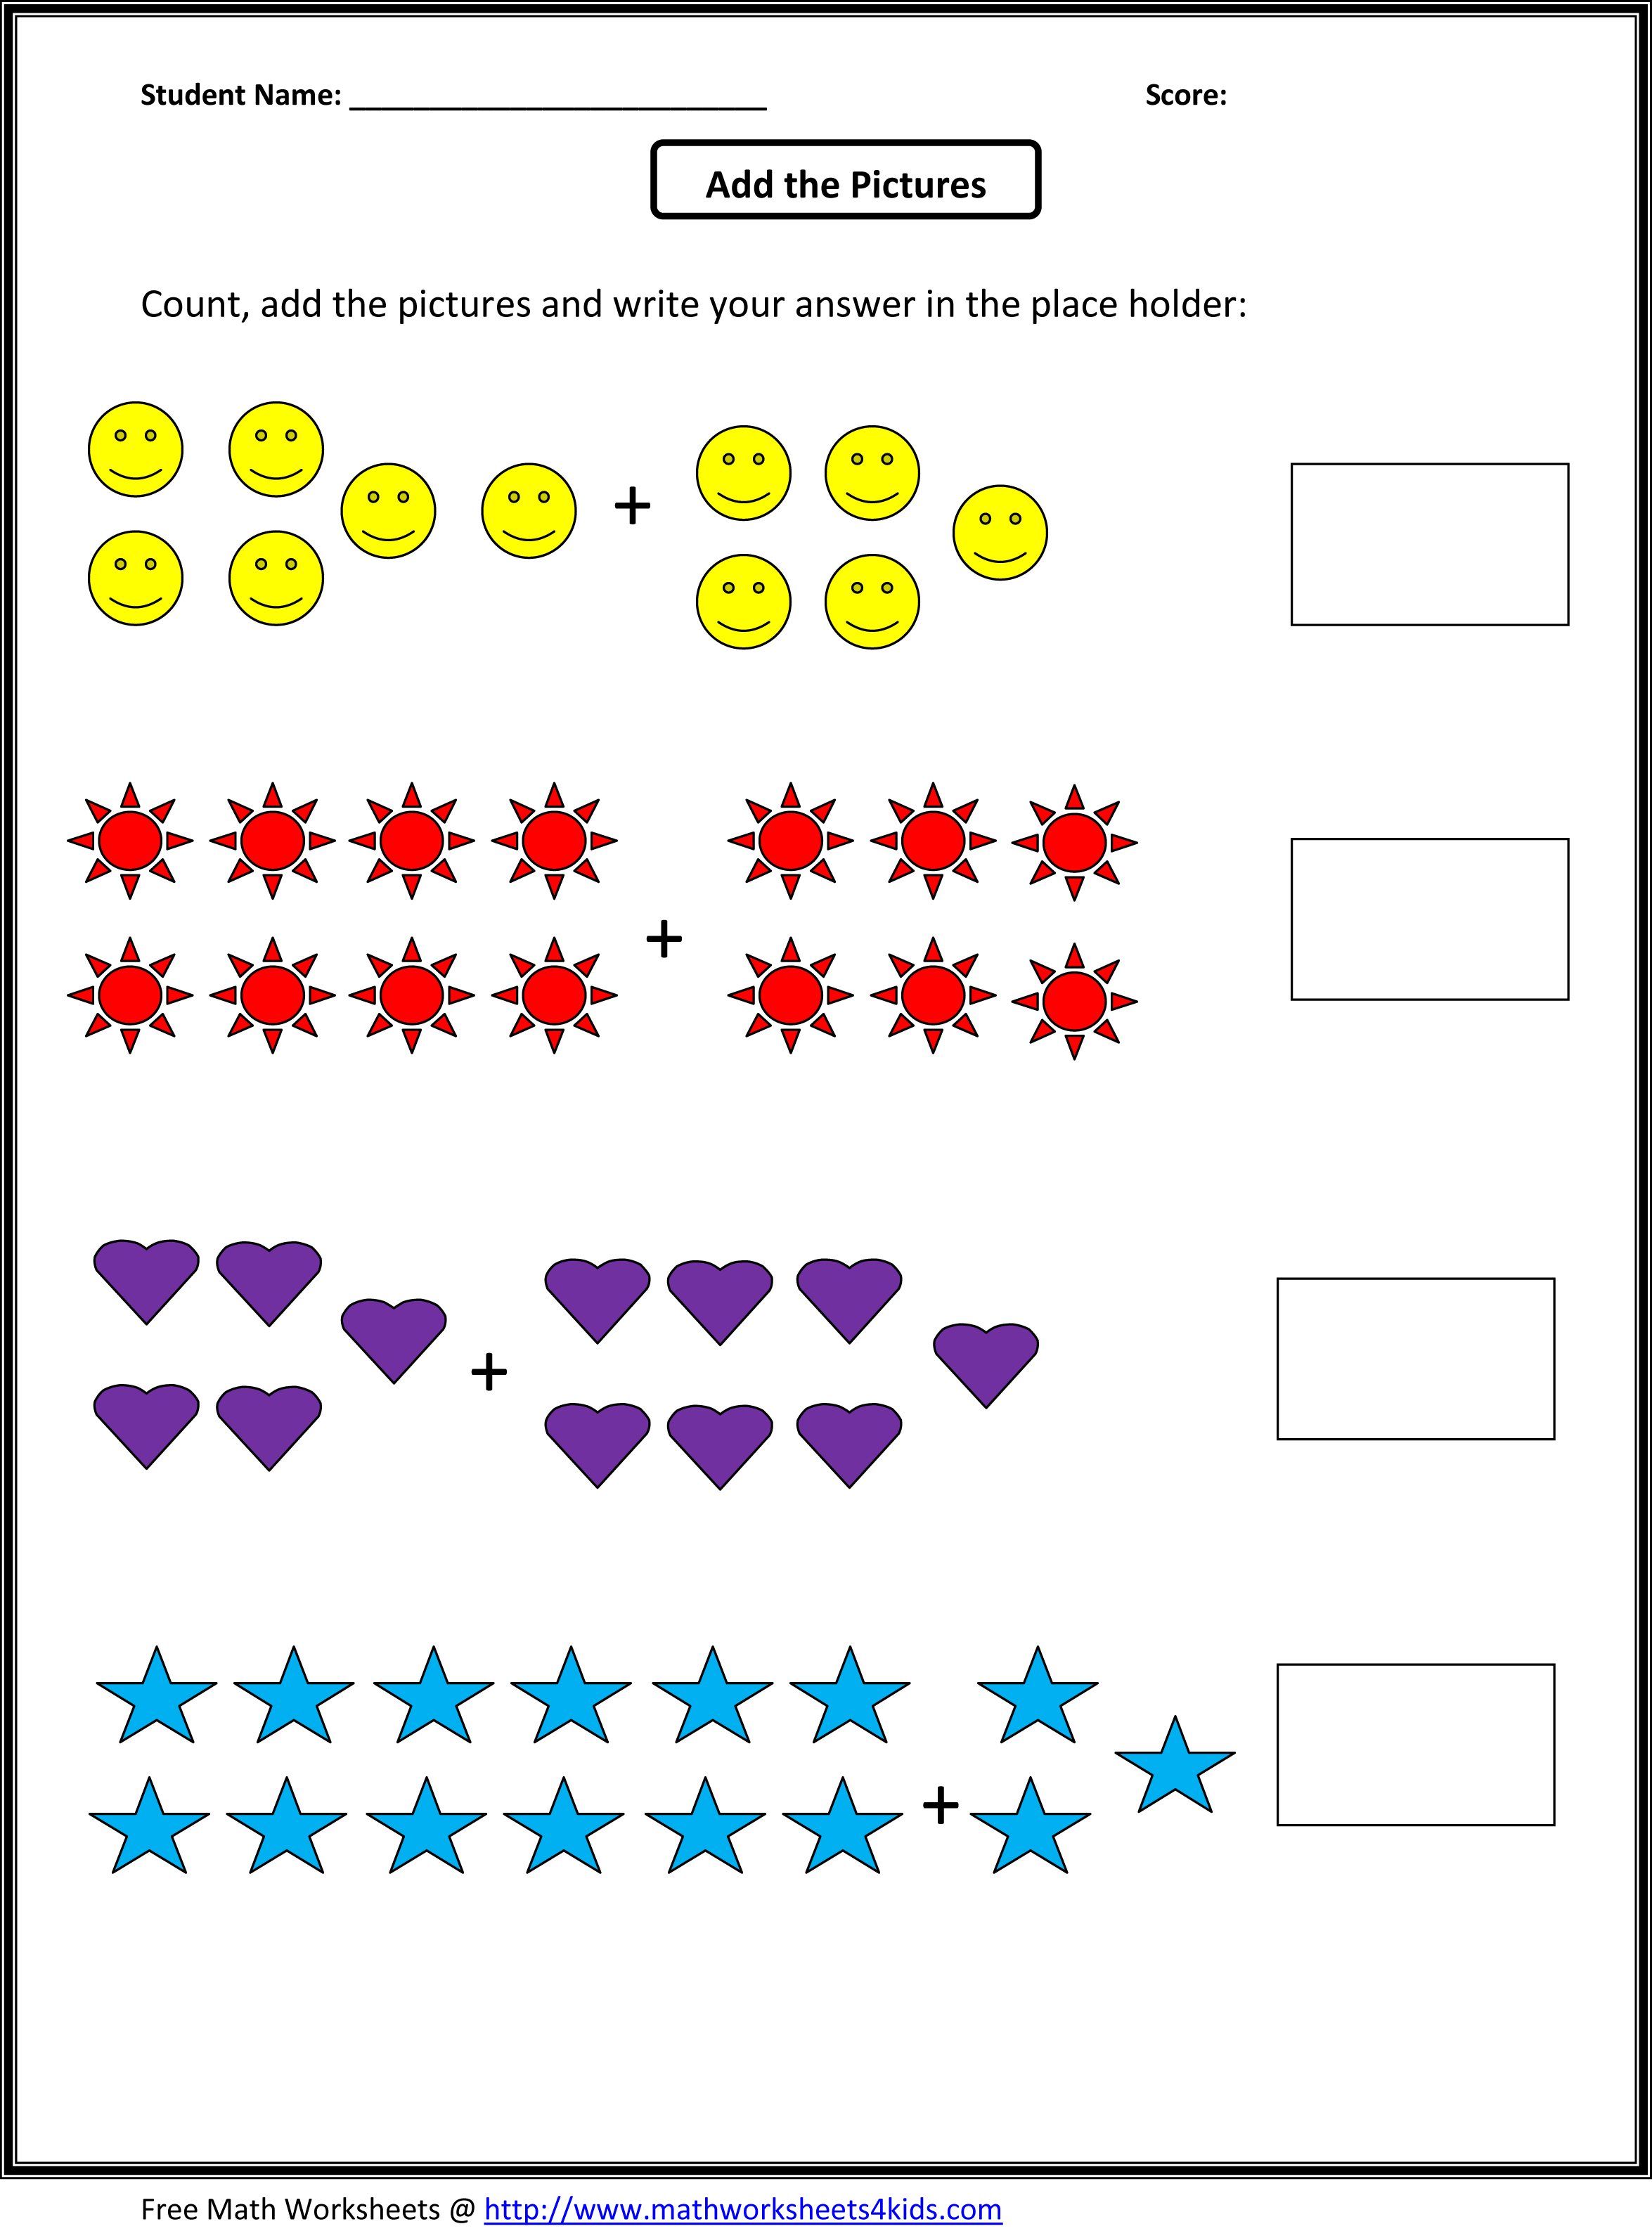 Weirdmailus  Fascinating Grade  Maths Worksheet  Reocurent With Glamorous Math Worksheets For St Grade Free  Reocurent With Delectable Free Rounding Worksheets For Th Grade Also English Active And Passive Voice Worksheets In Addition Spelling Cvc Words Worksheet And Works Worksheets As Well As Biology Cell Structure Worksheet Additionally Remember The Titans Worksheets From Reocurentcom With Weirdmailus  Glamorous Grade  Maths Worksheet  Reocurent With Delectable Math Worksheets For St Grade Free  Reocurent And Fascinating Free Rounding Worksheets For Th Grade Also English Active And Passive Voice Worksheets In Addition Spelling Cvc Words Worksheet From Reocurentcom